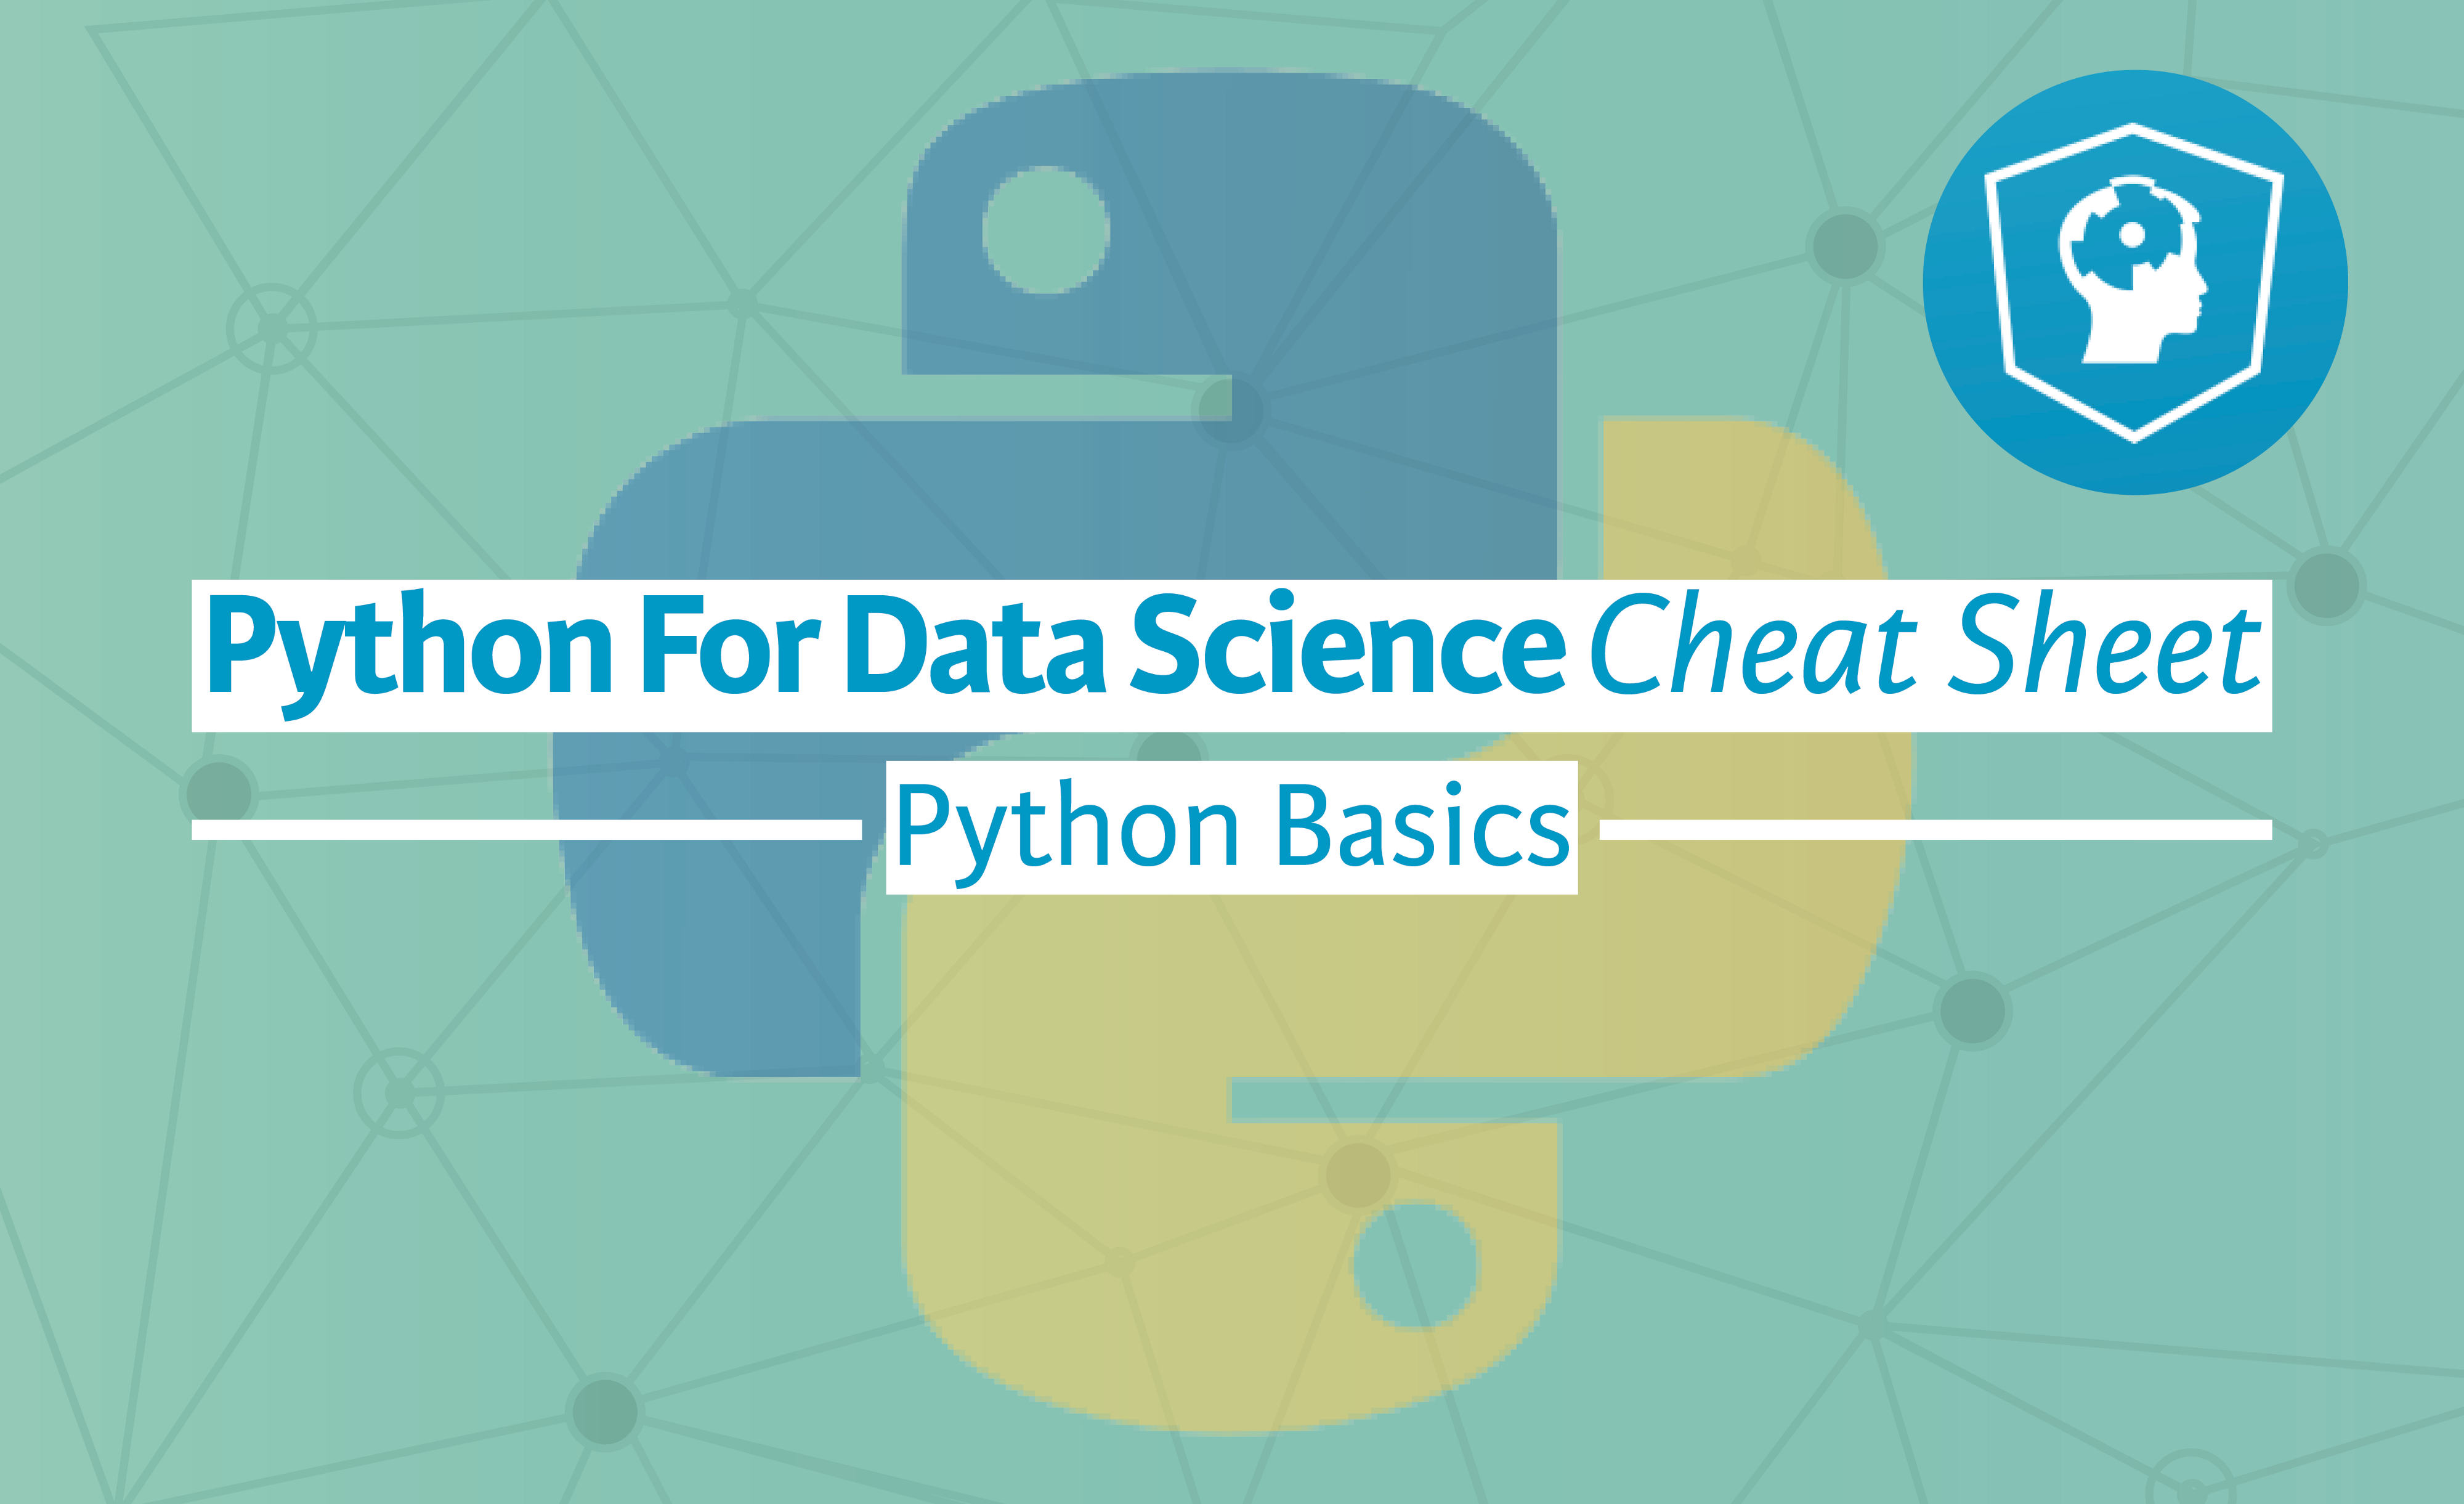 Python For Data Science — A Cheat Sheet For Beginners